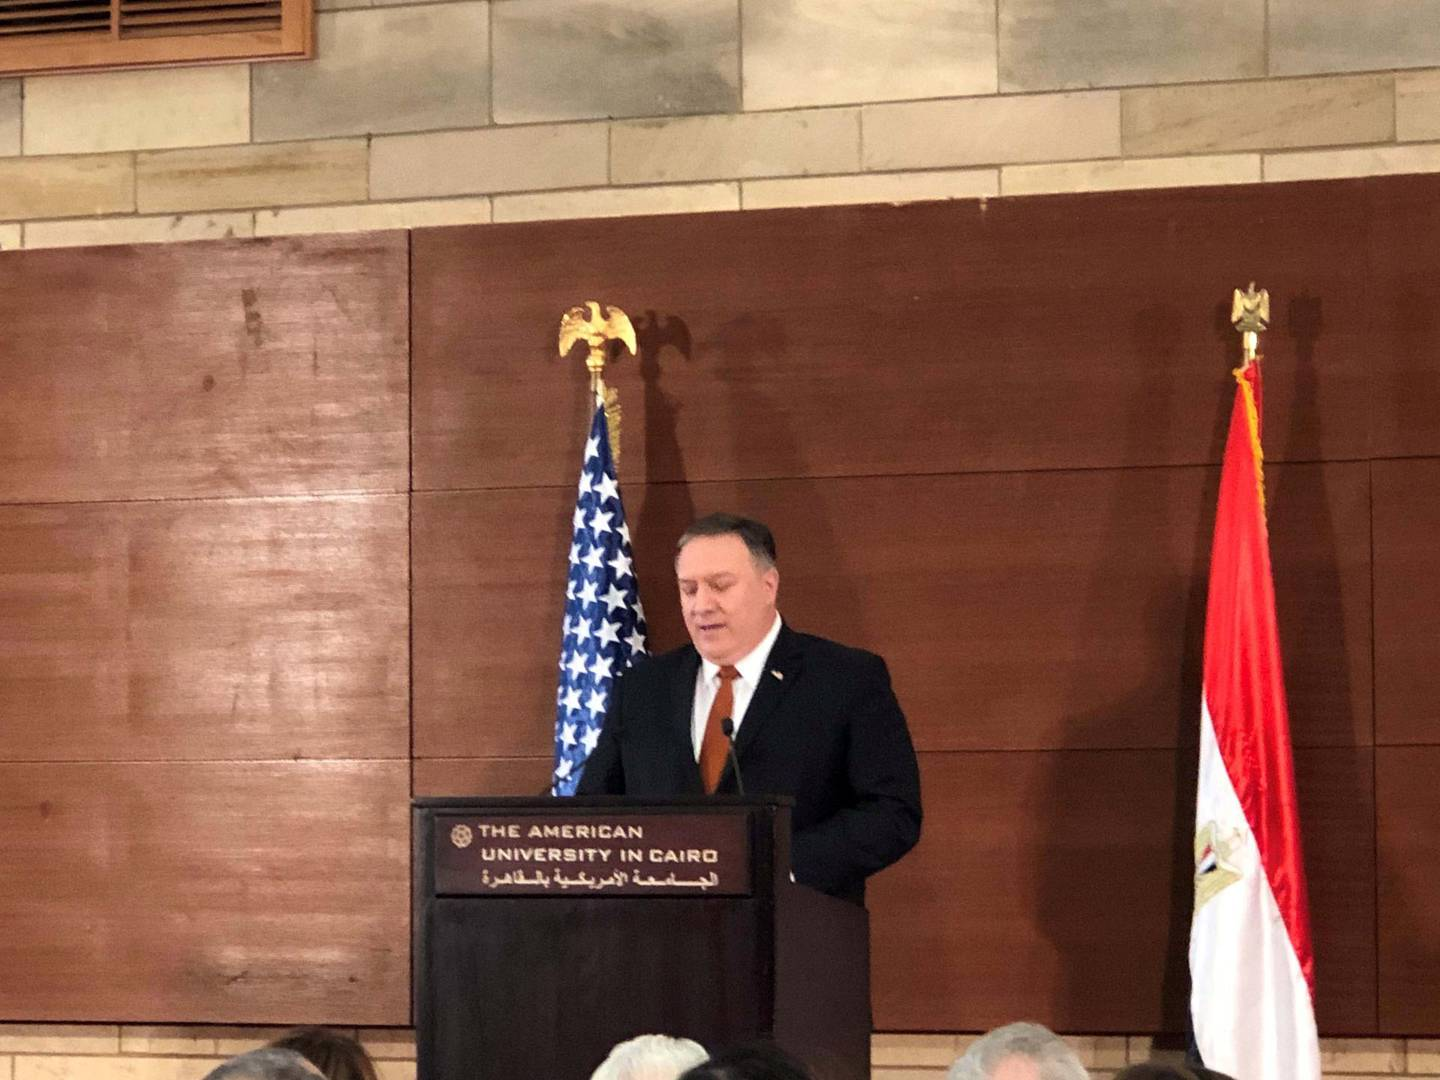 U.S. Secretary of State Michael R. Pompeo giving a speech at The American University in Cairo, Egypt. Jacob Wirtschafter for The National